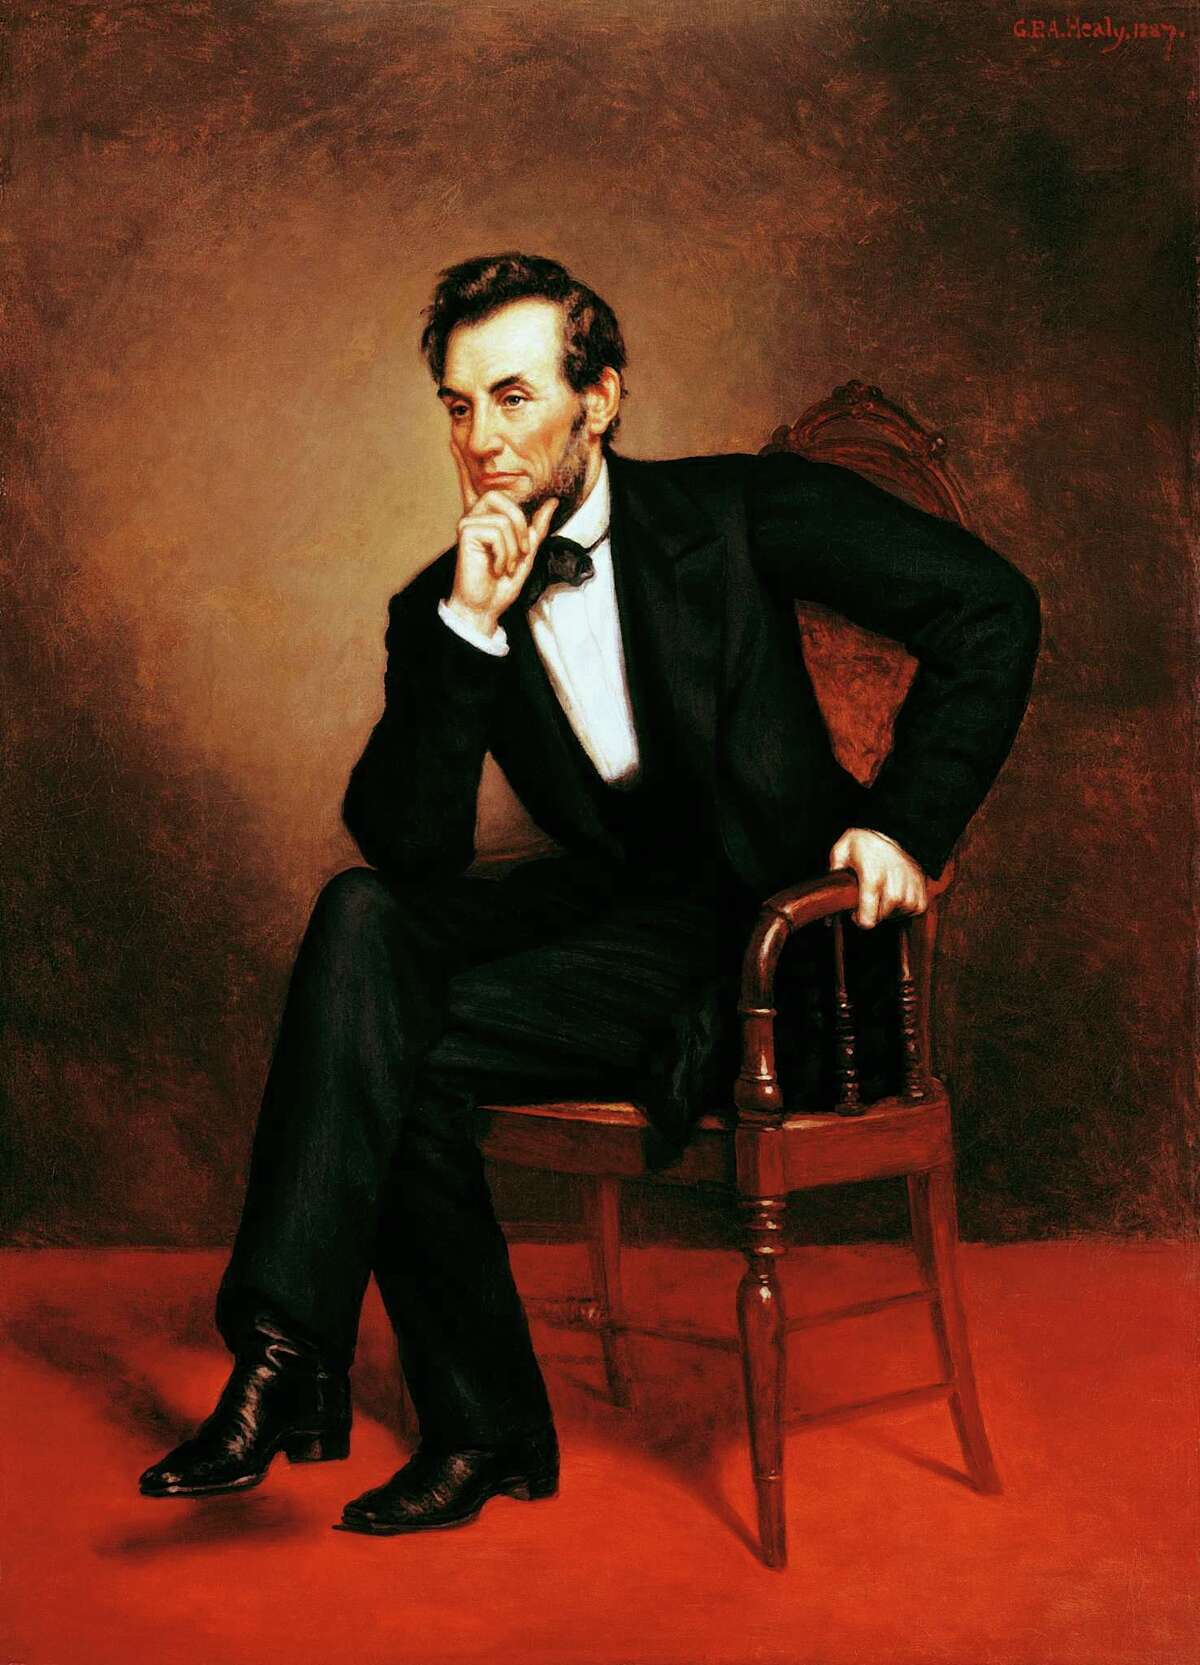 Abraham Lincoln In 1876, a counterfeiting ring conceived a plan to steal Abraham Lincoln's body and hold it for $200,000 ransom. They broke into the grave only to discover, at that moment, that one of their members was a government agent.